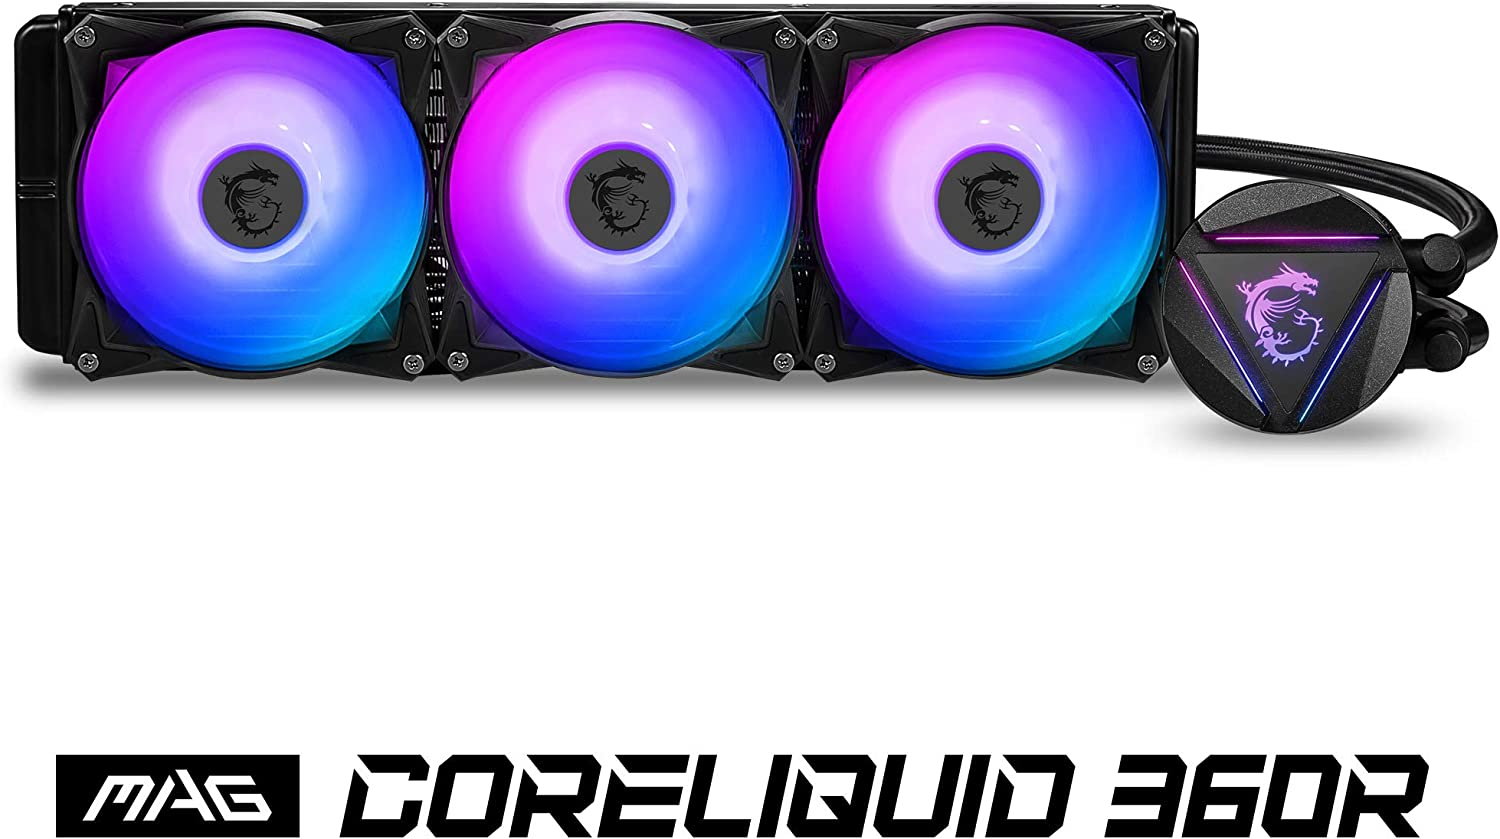 MSI MAG CORELIQUID 360R CPU AIO Cooler ' 360mm Radiator, 3X 120mm ARGB PWM Fan, Adjustable ARGB MSI Dragon CPU Mount, Compatible with Intel and AMD Platforms'